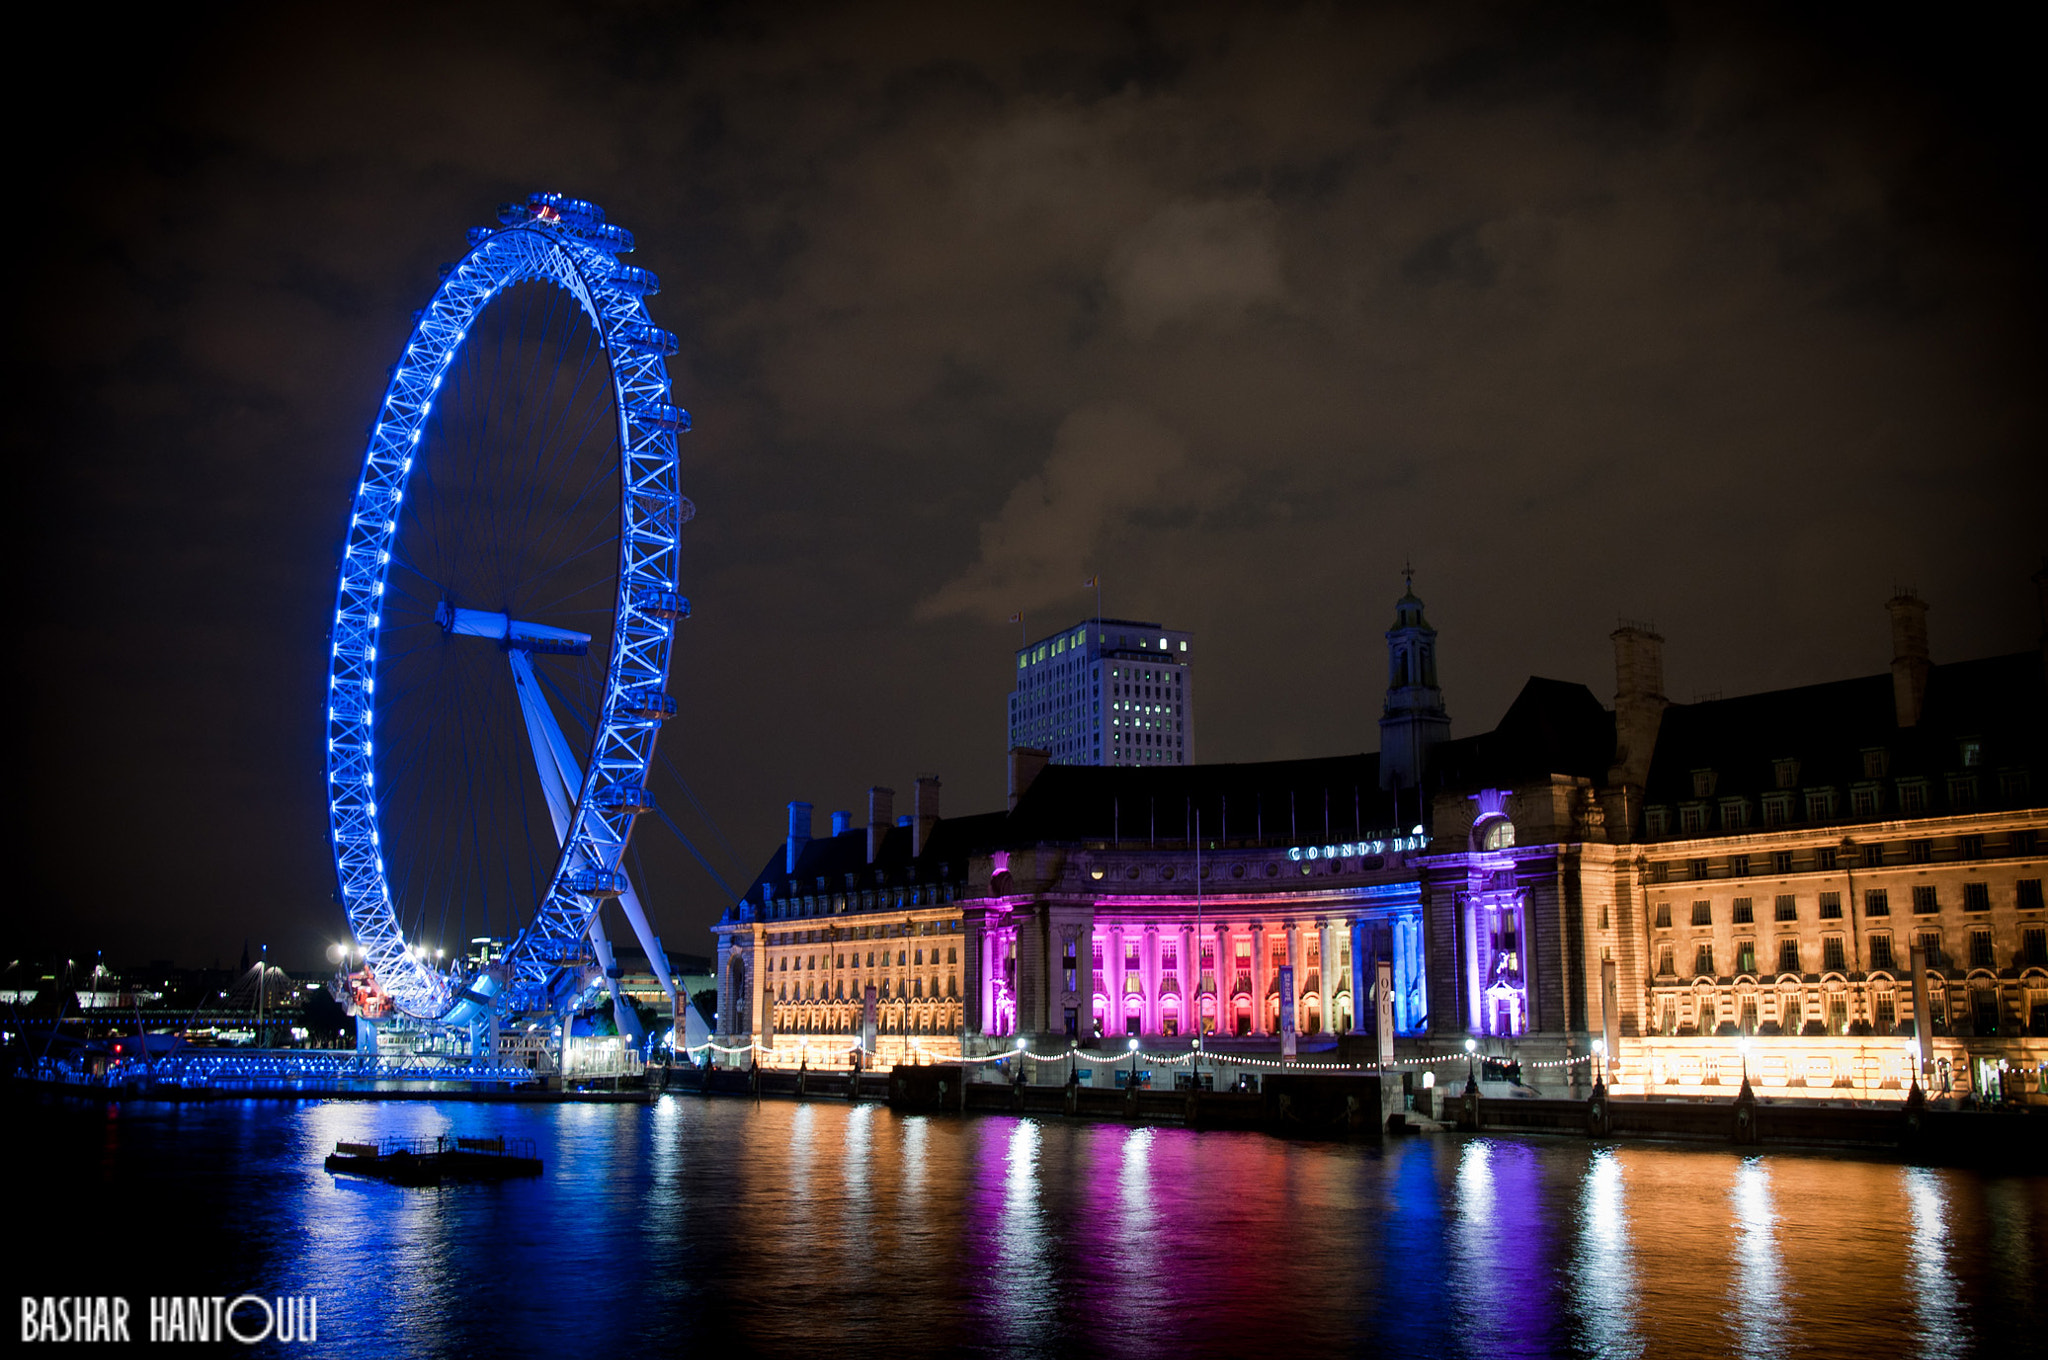 Photograph London Eye by Bashar H on 500px